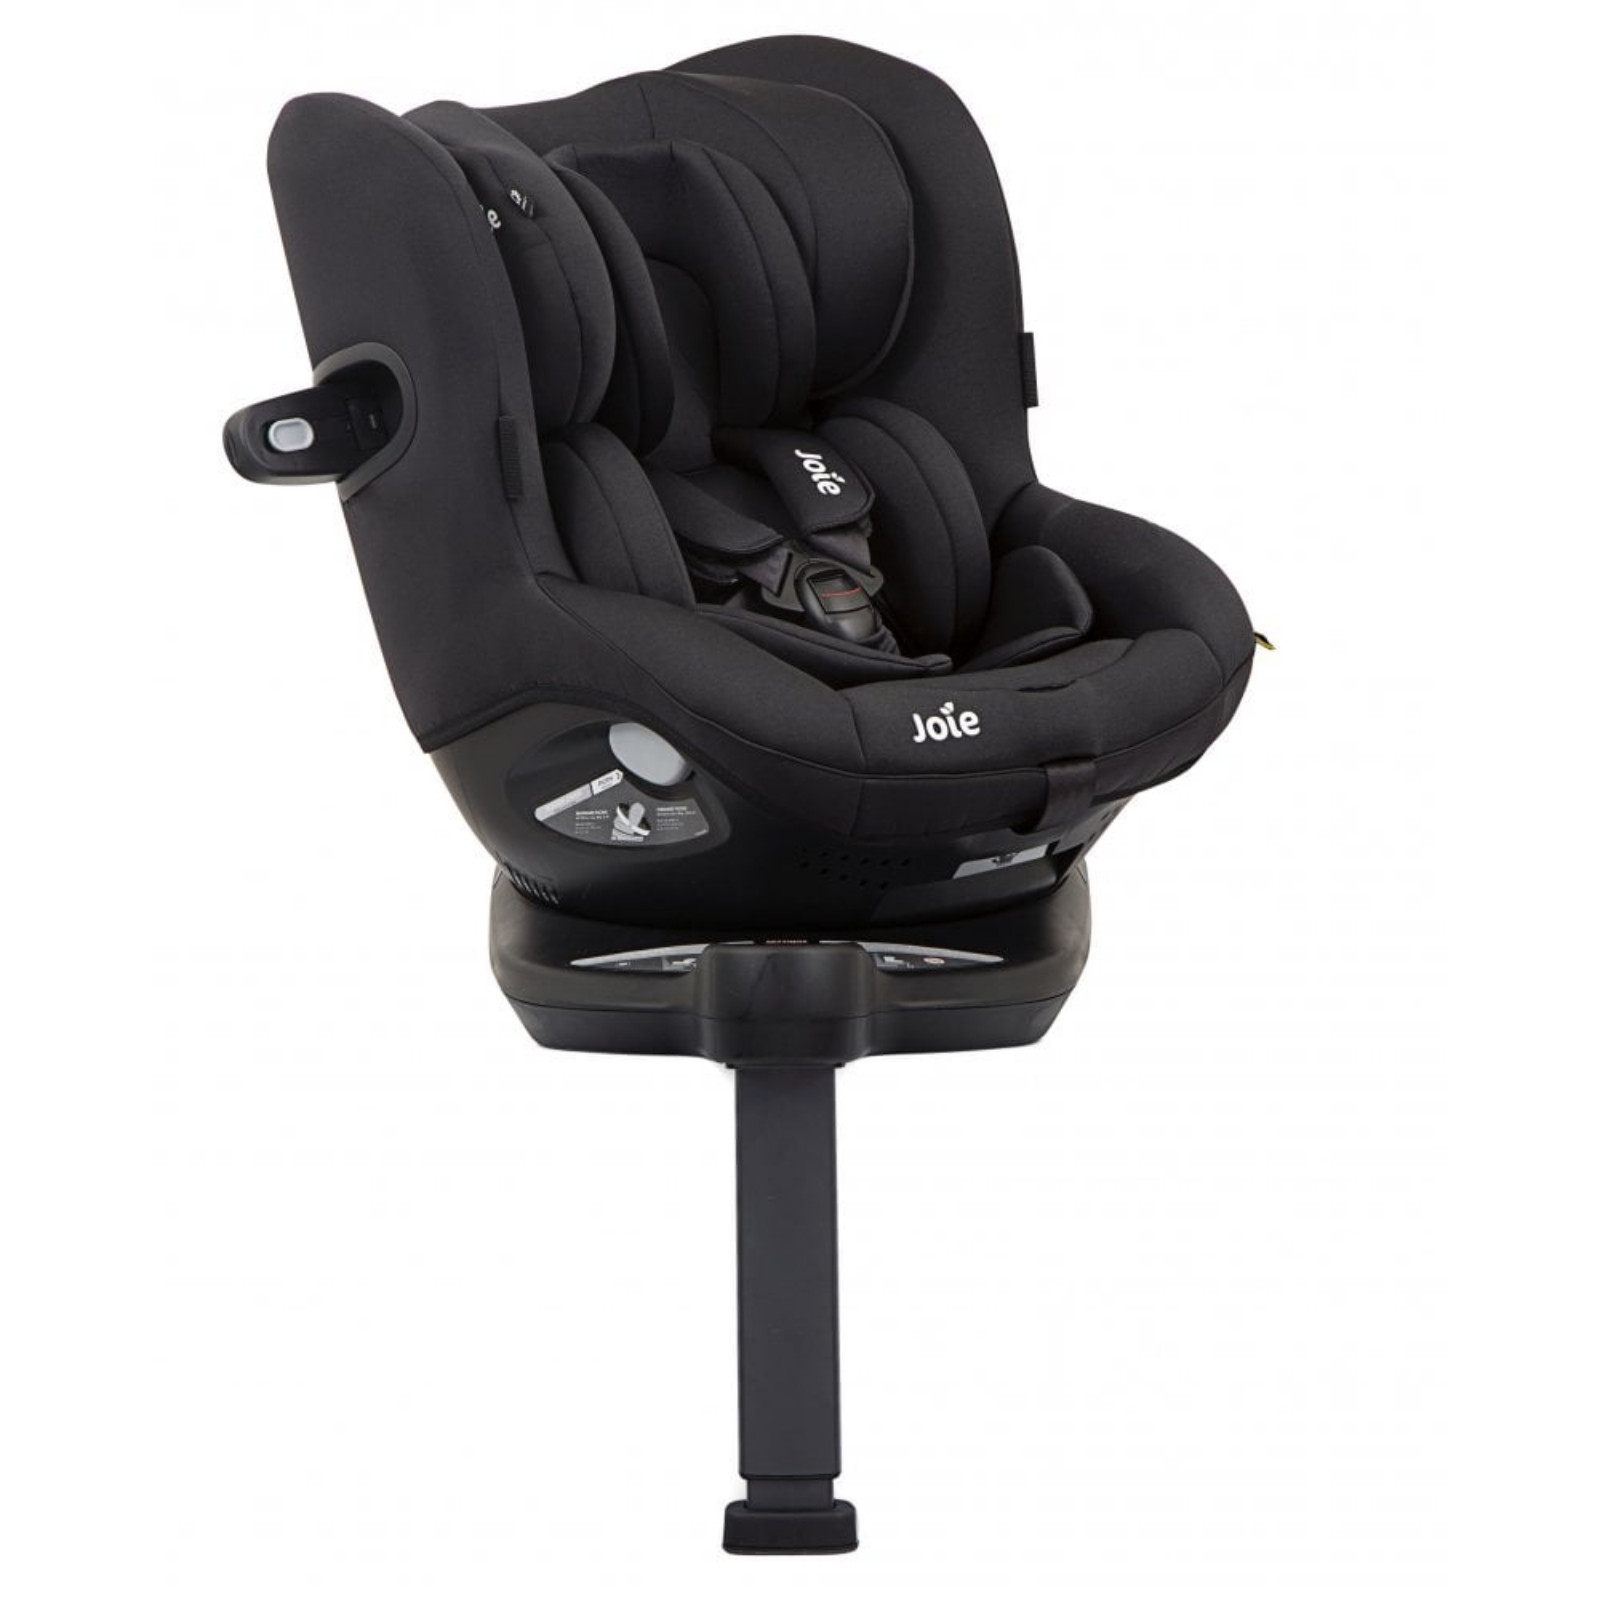 joie i spin 360 isize group 0 1 car seat coal buy at online4baby. Black Bedroom Furniture Sets. Home Design Ideas